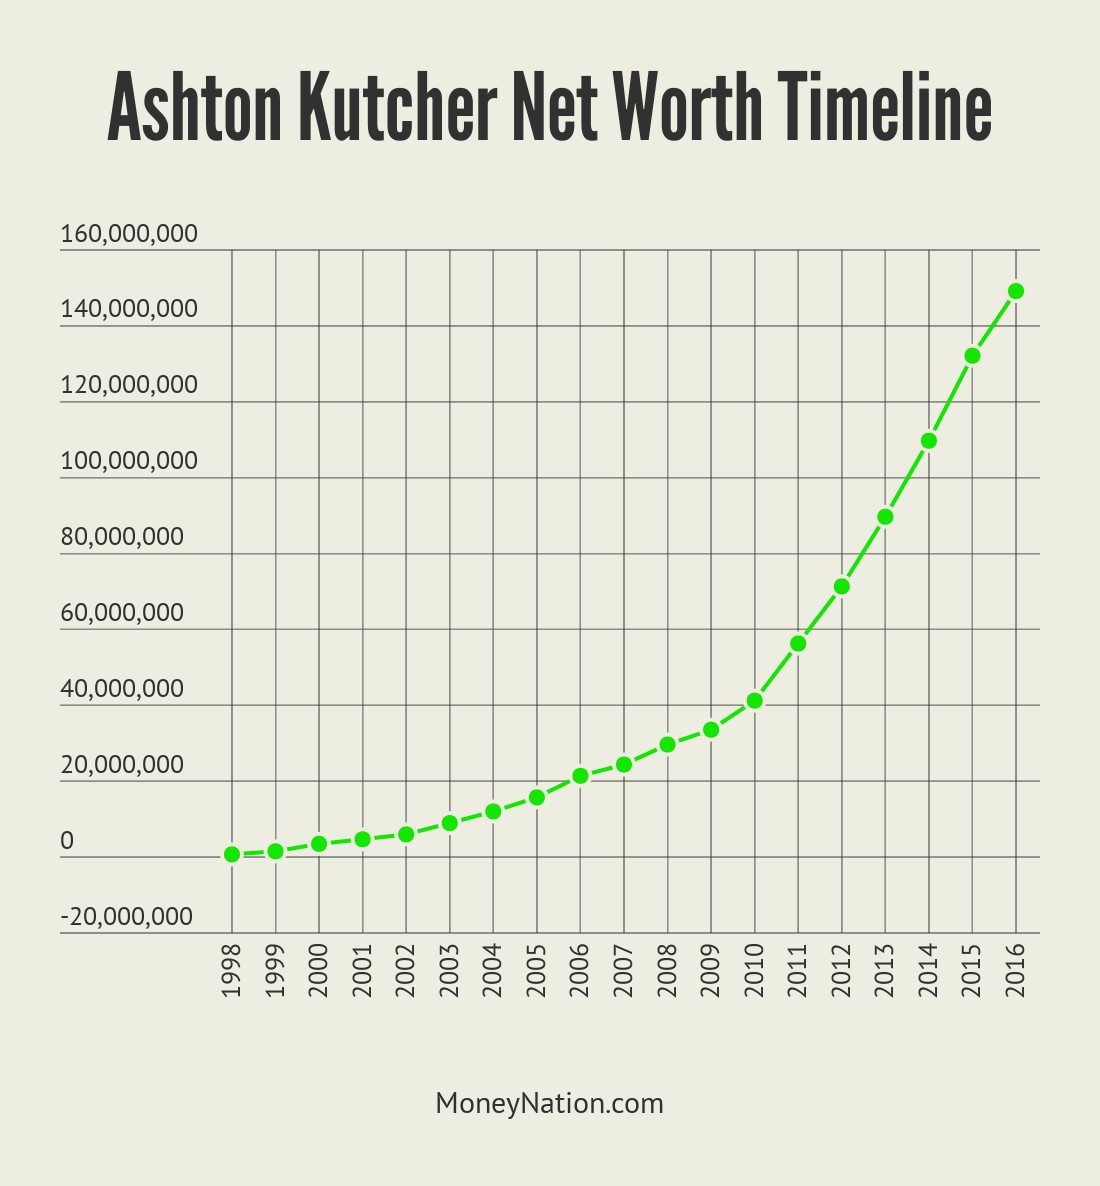 Ashton Kutcher Net Worth Timeline